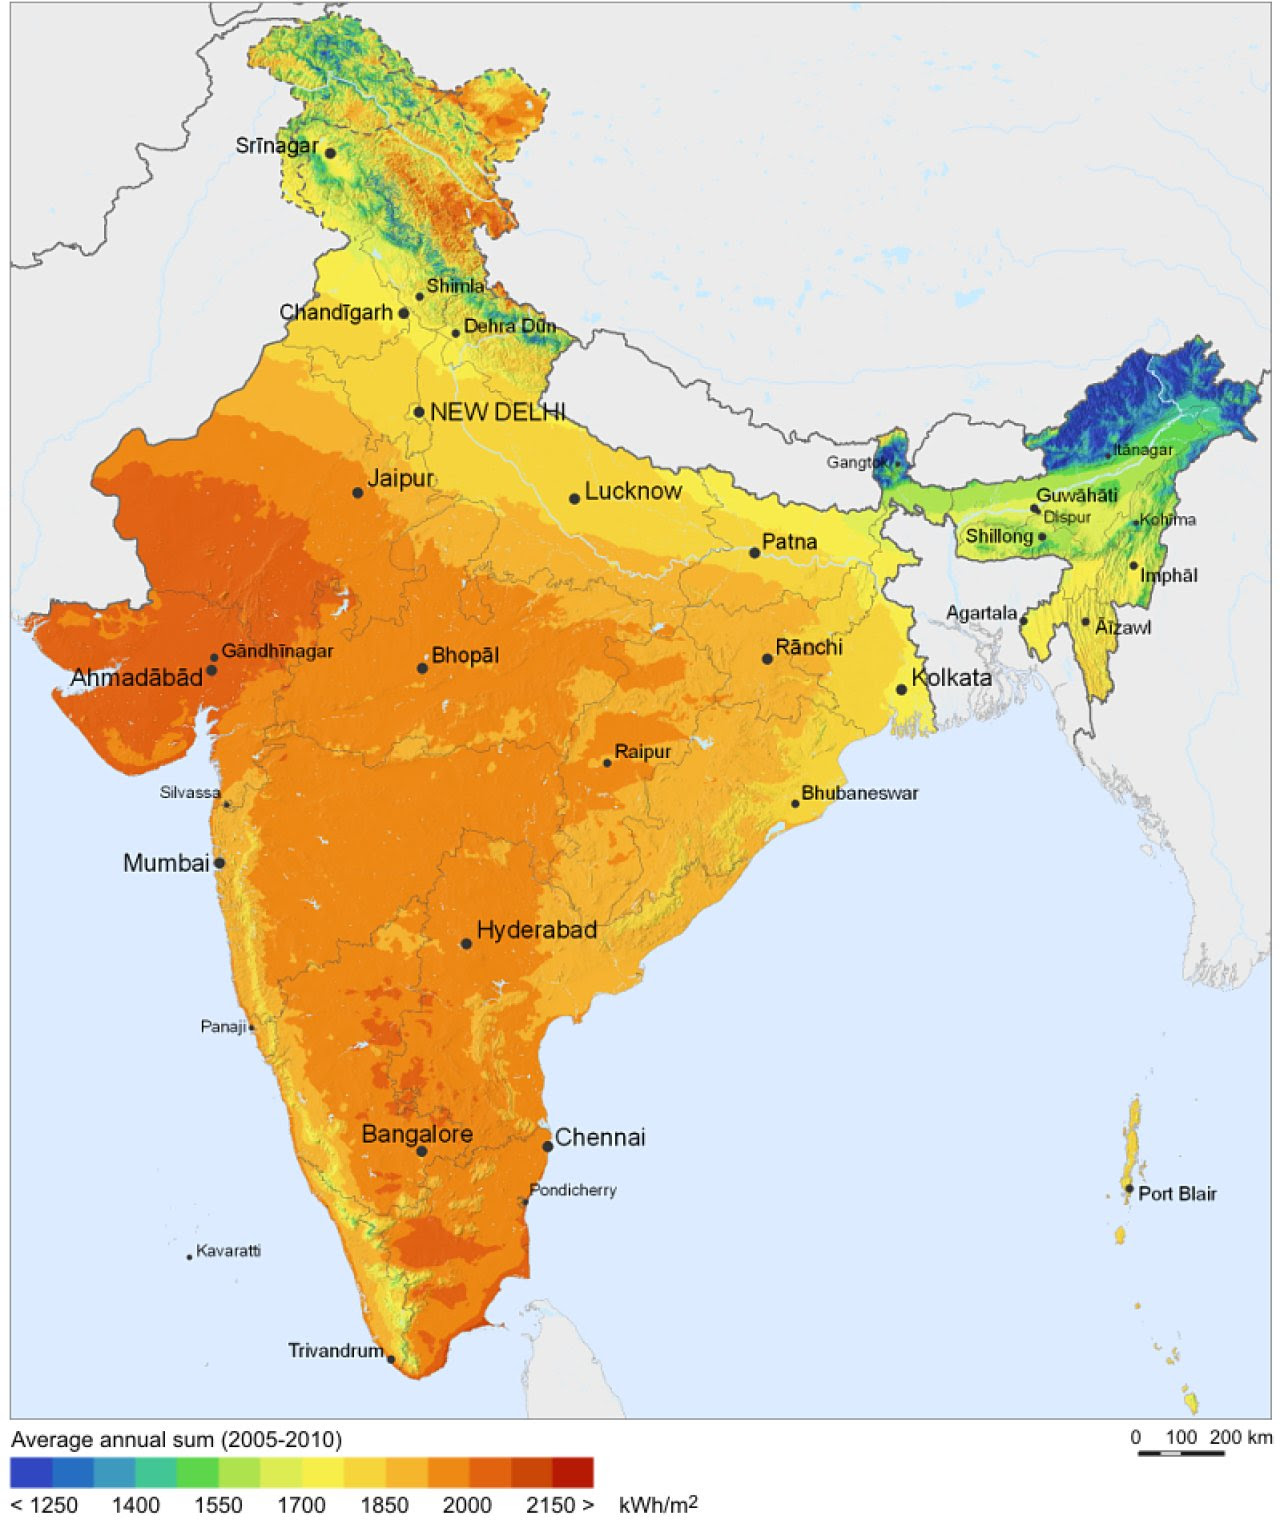 Age Of Solar : After Swachh Bharat, India Needs A Swachh Energy Campaign